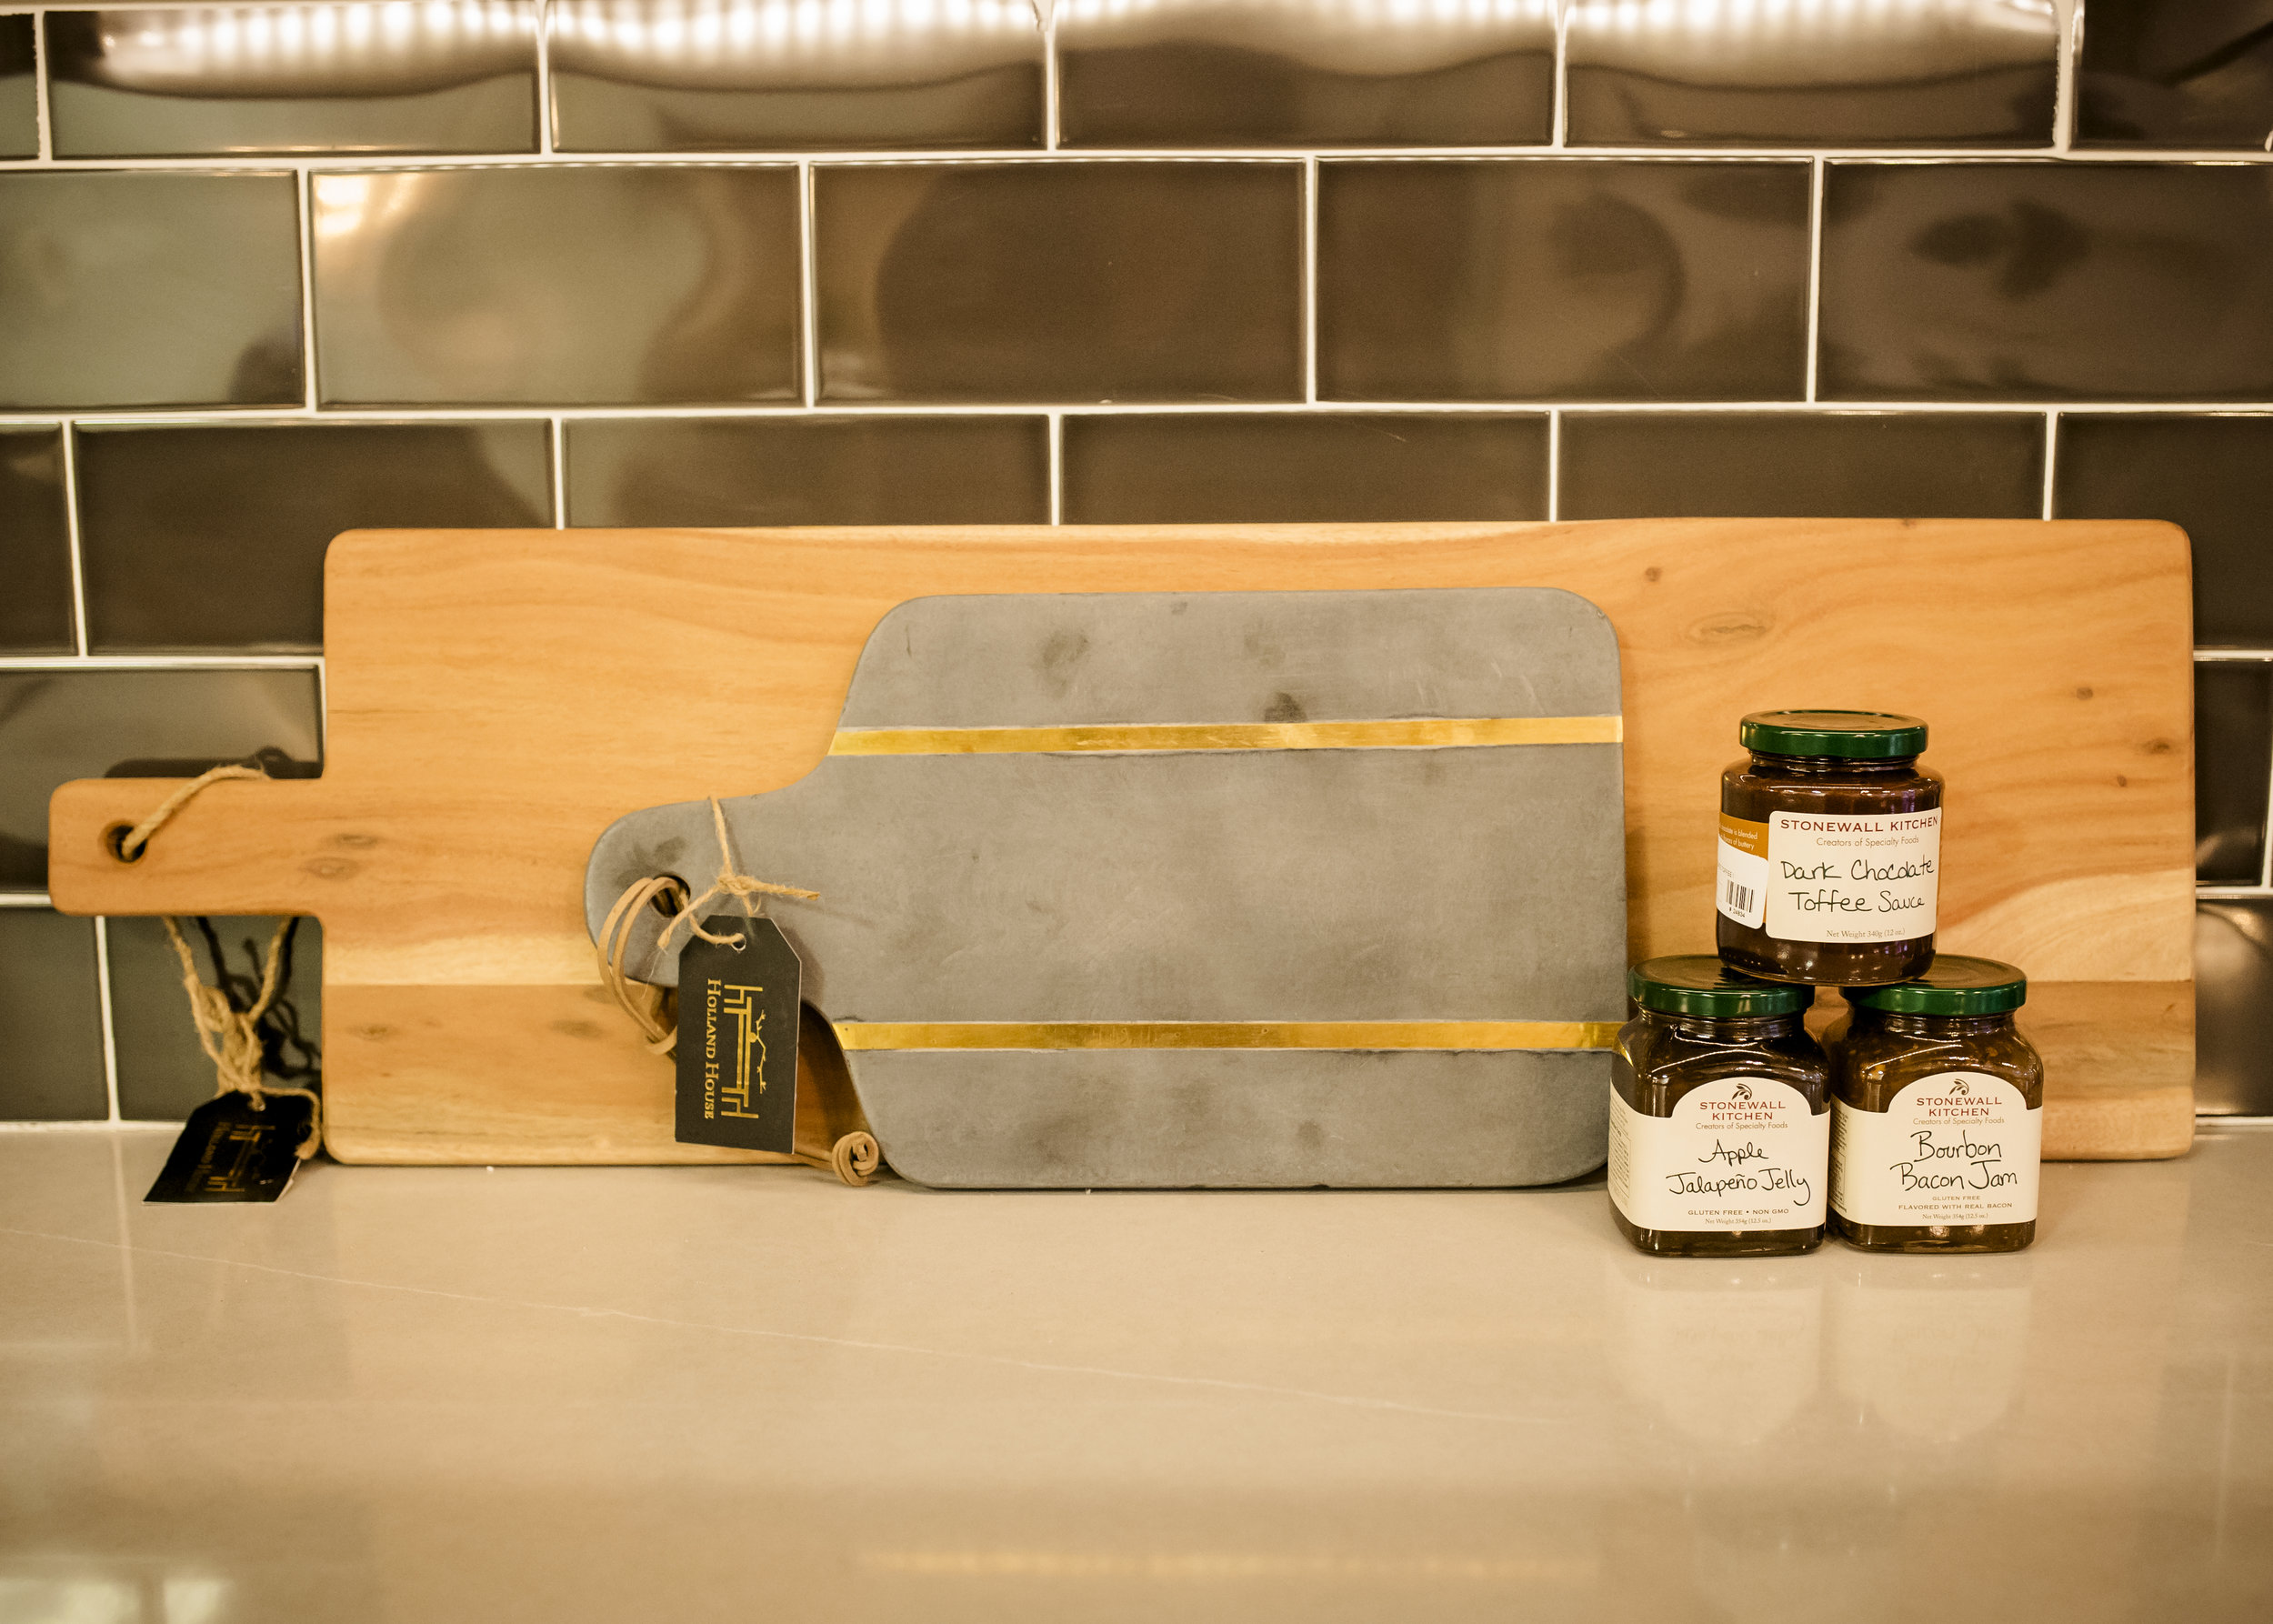 Oversized Wood Cutting Board $100, Gray Glimmer Cutting Board $45, Dark Chocolate Toffee Sauce $8, Apple Jalapeño Jelly $8, Bourbon Bacon Jam $8